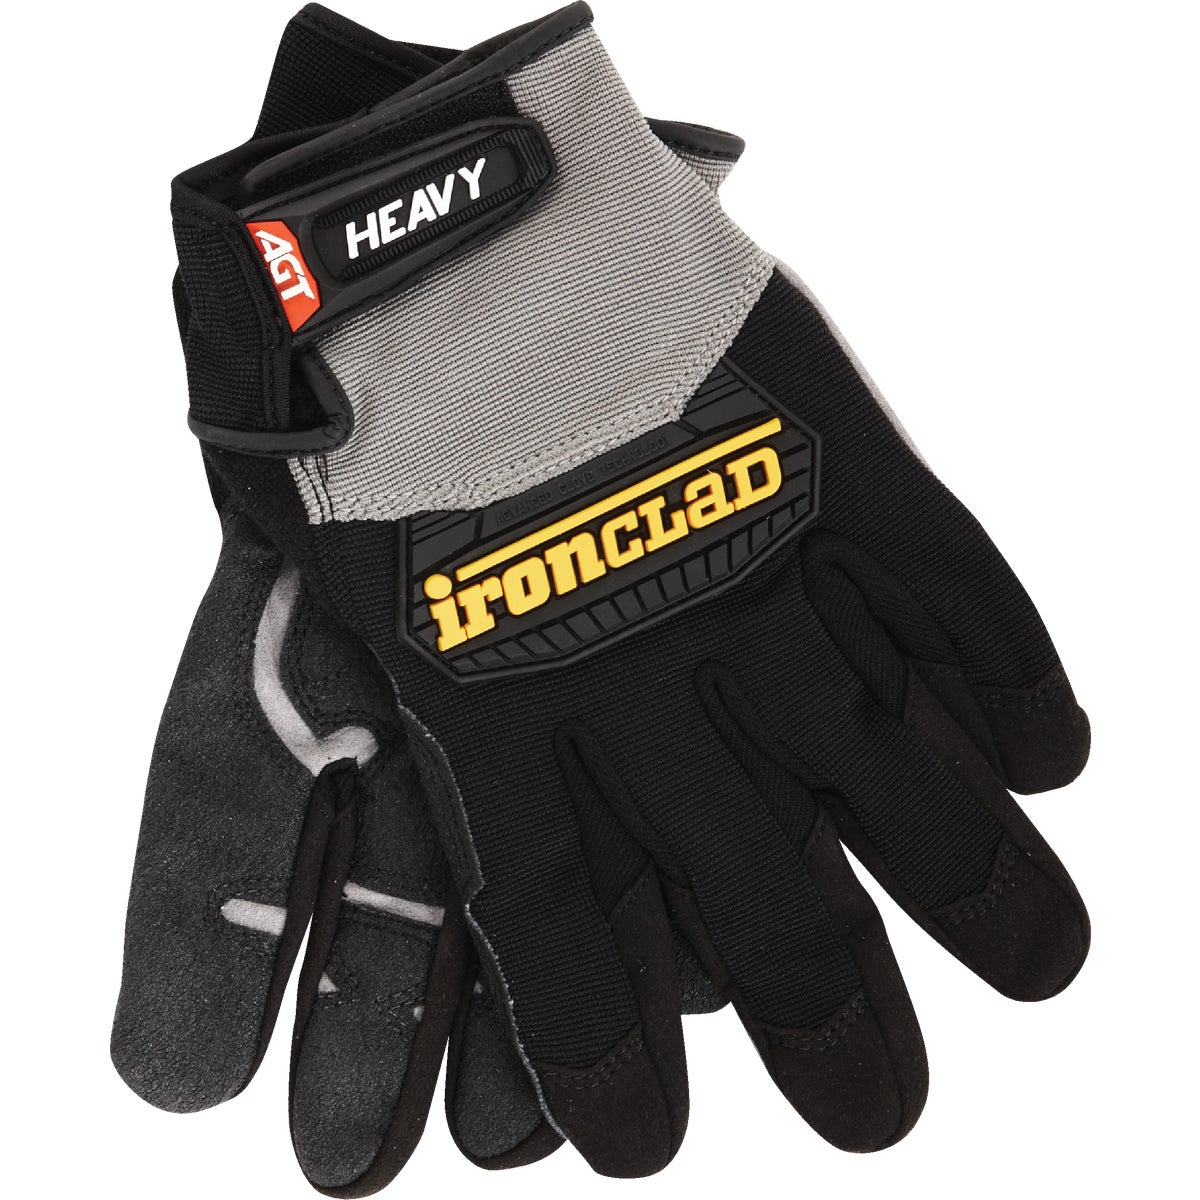 MED HEAVY UTILITY GLOVE - HUG2-03-M by Ironclad Performance